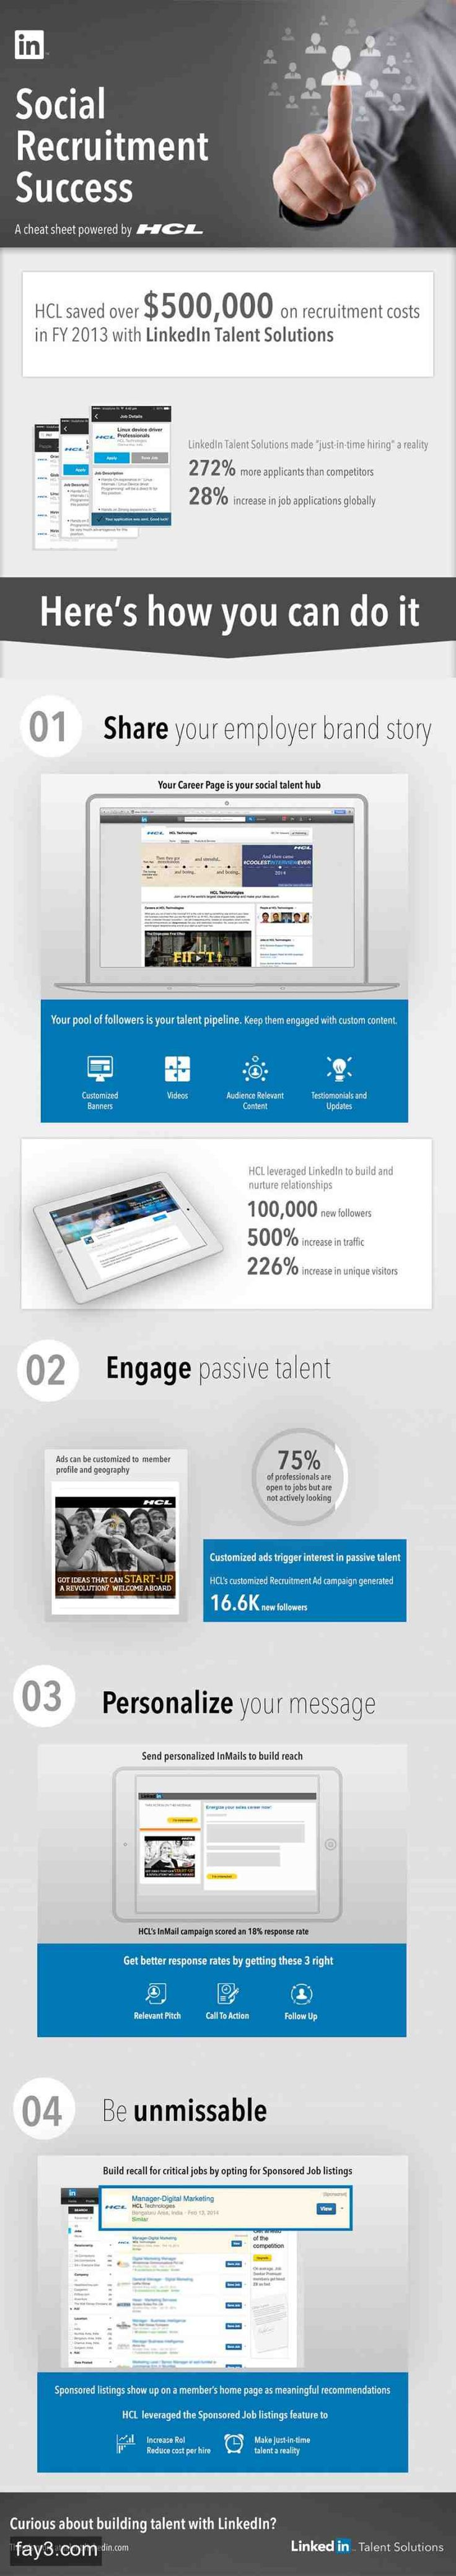 Cheat Sheet for Social Media Recruiting: HCL Technologies' Journey #Infographic #HR #Jobs